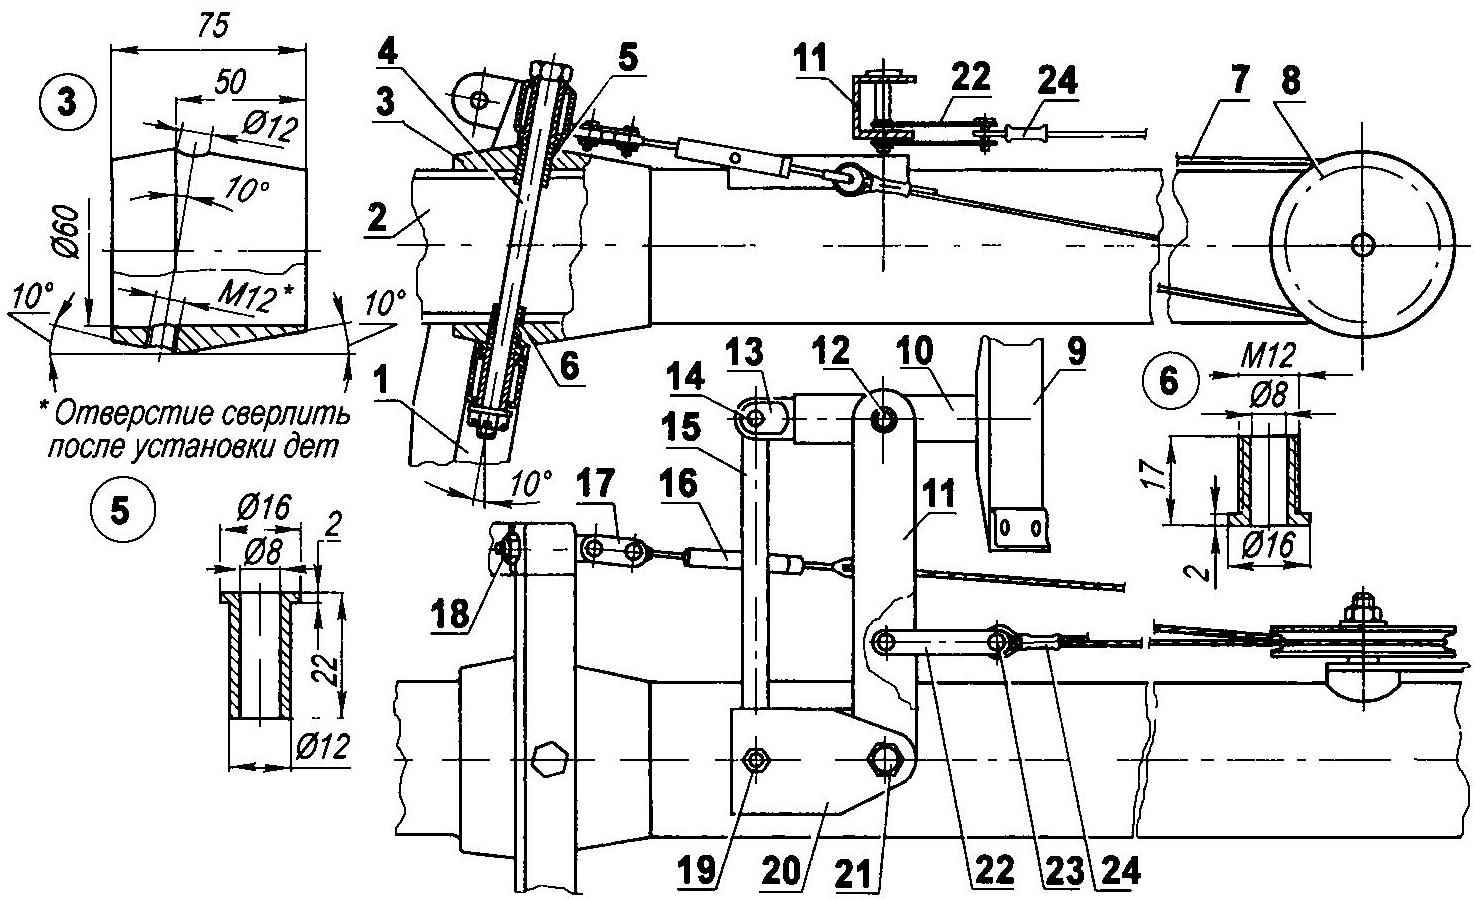 Control of the front landing gear